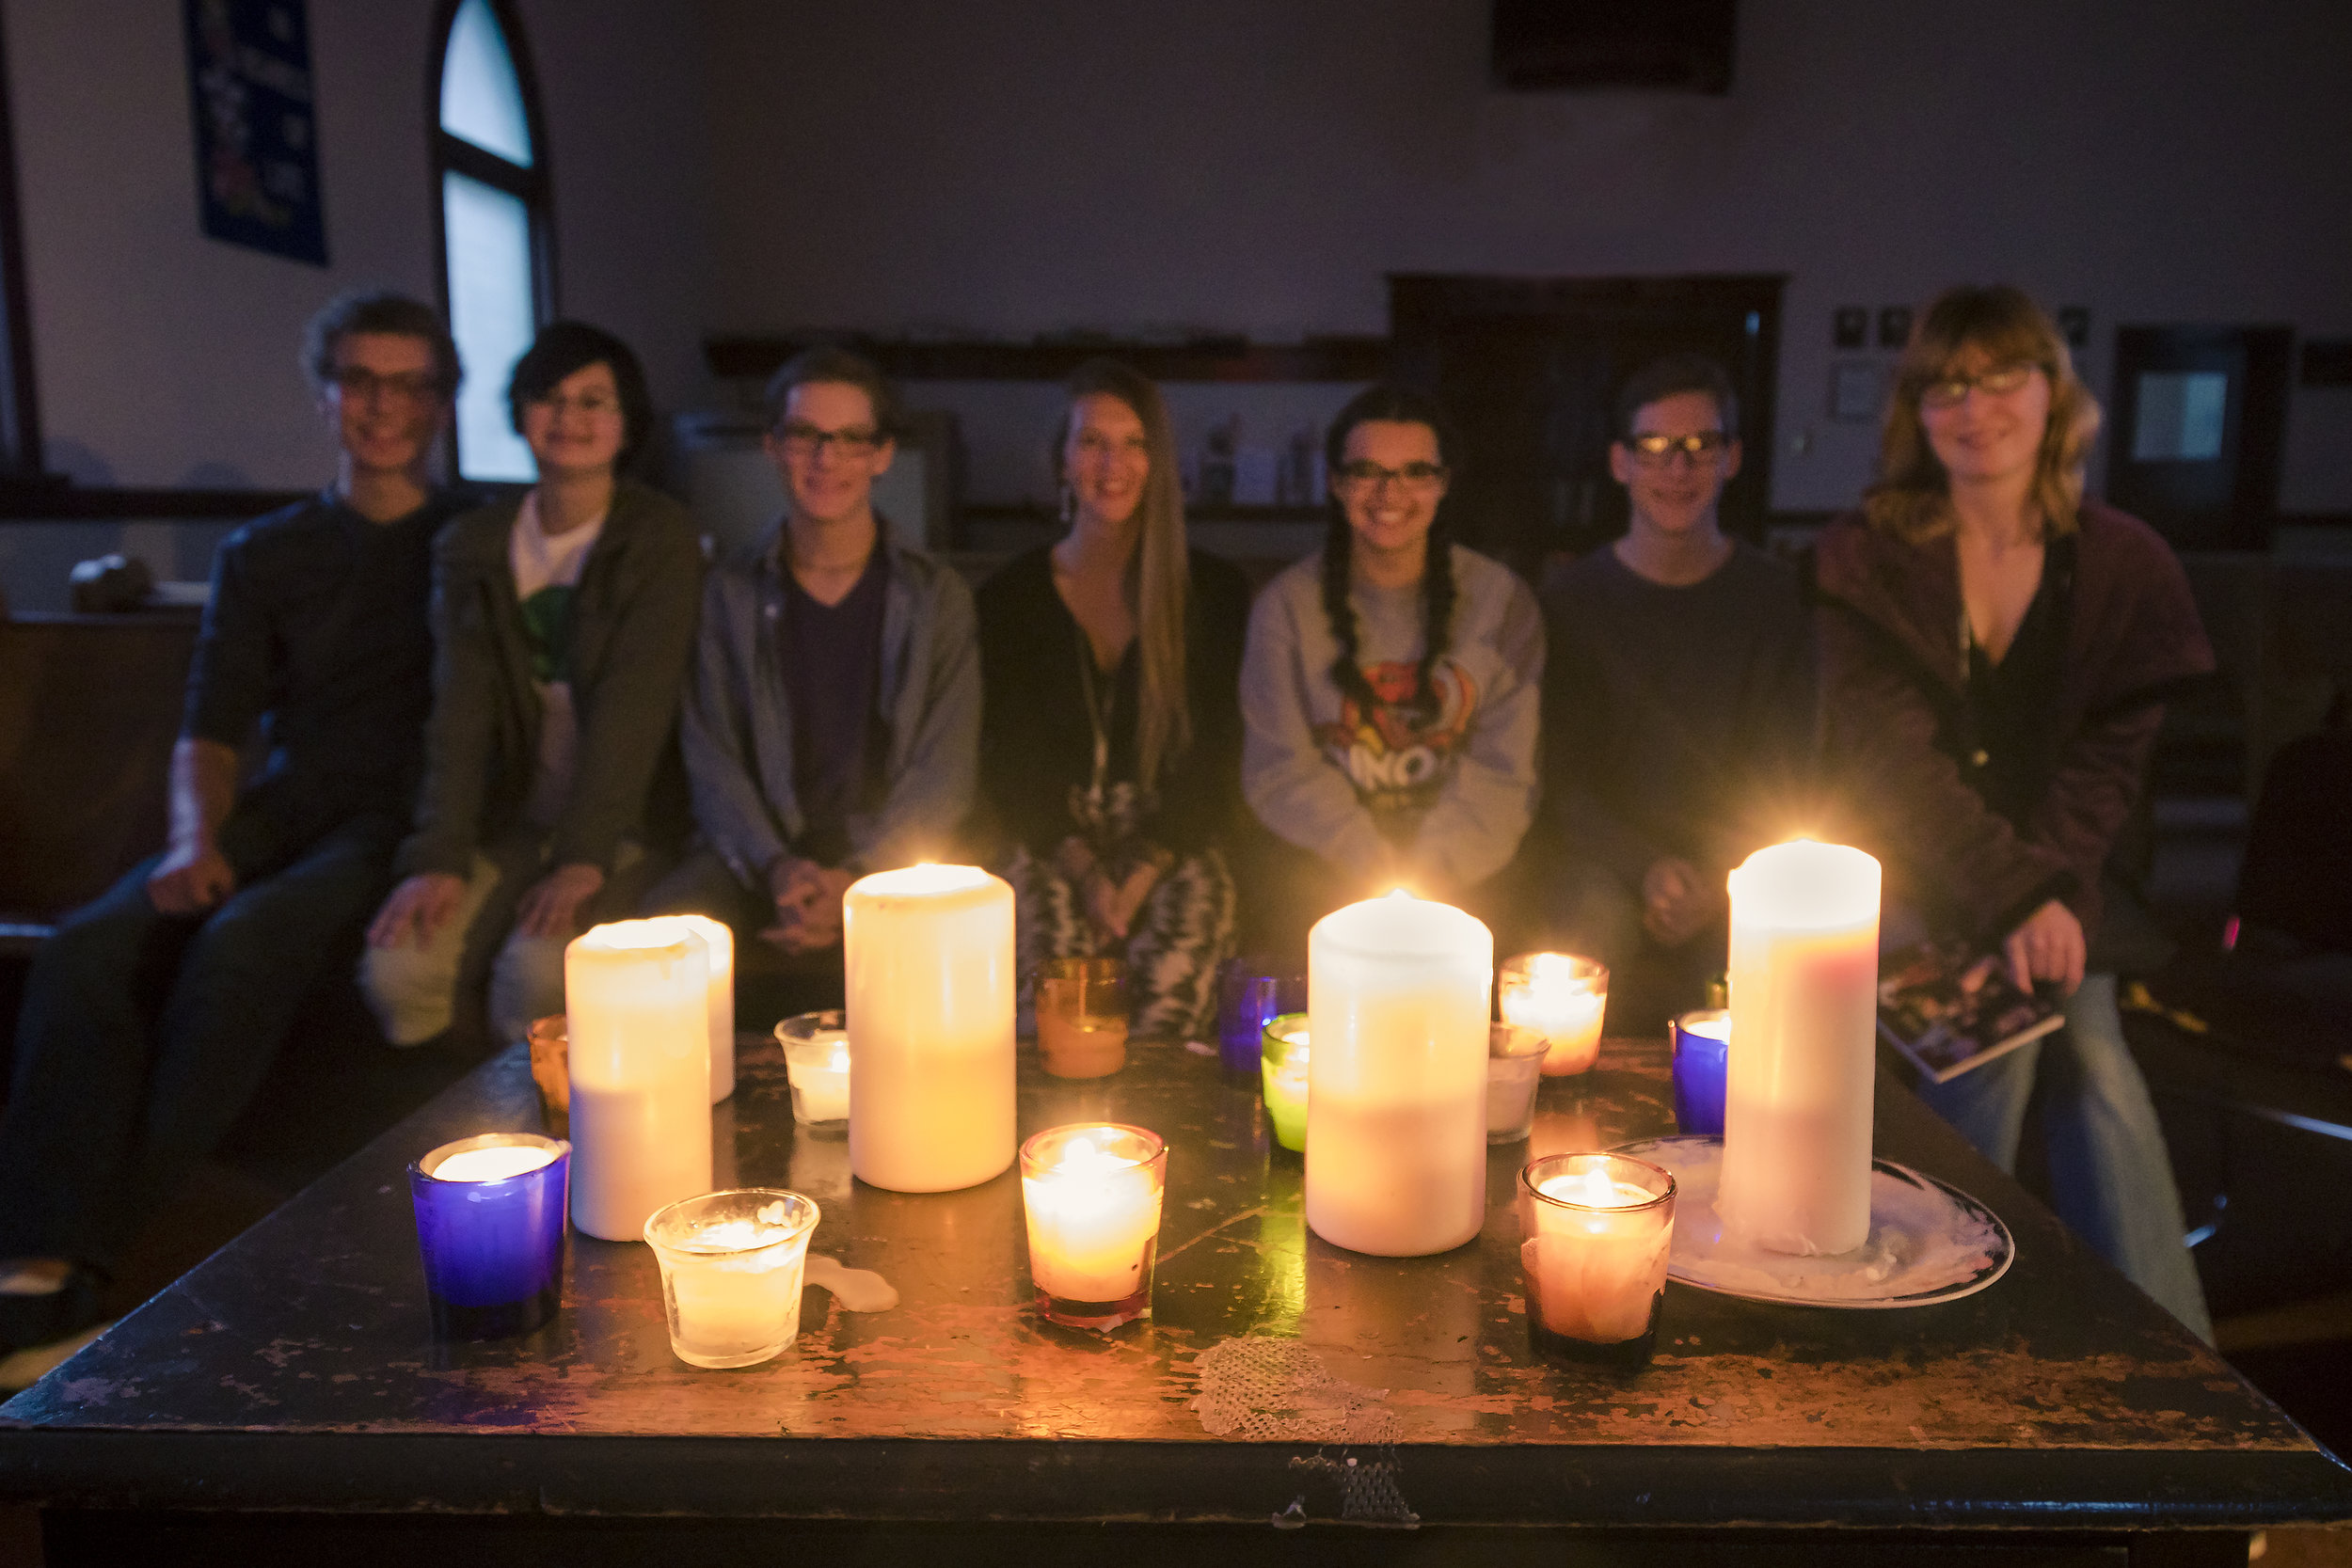 Group Photo in front of Candles.jpg